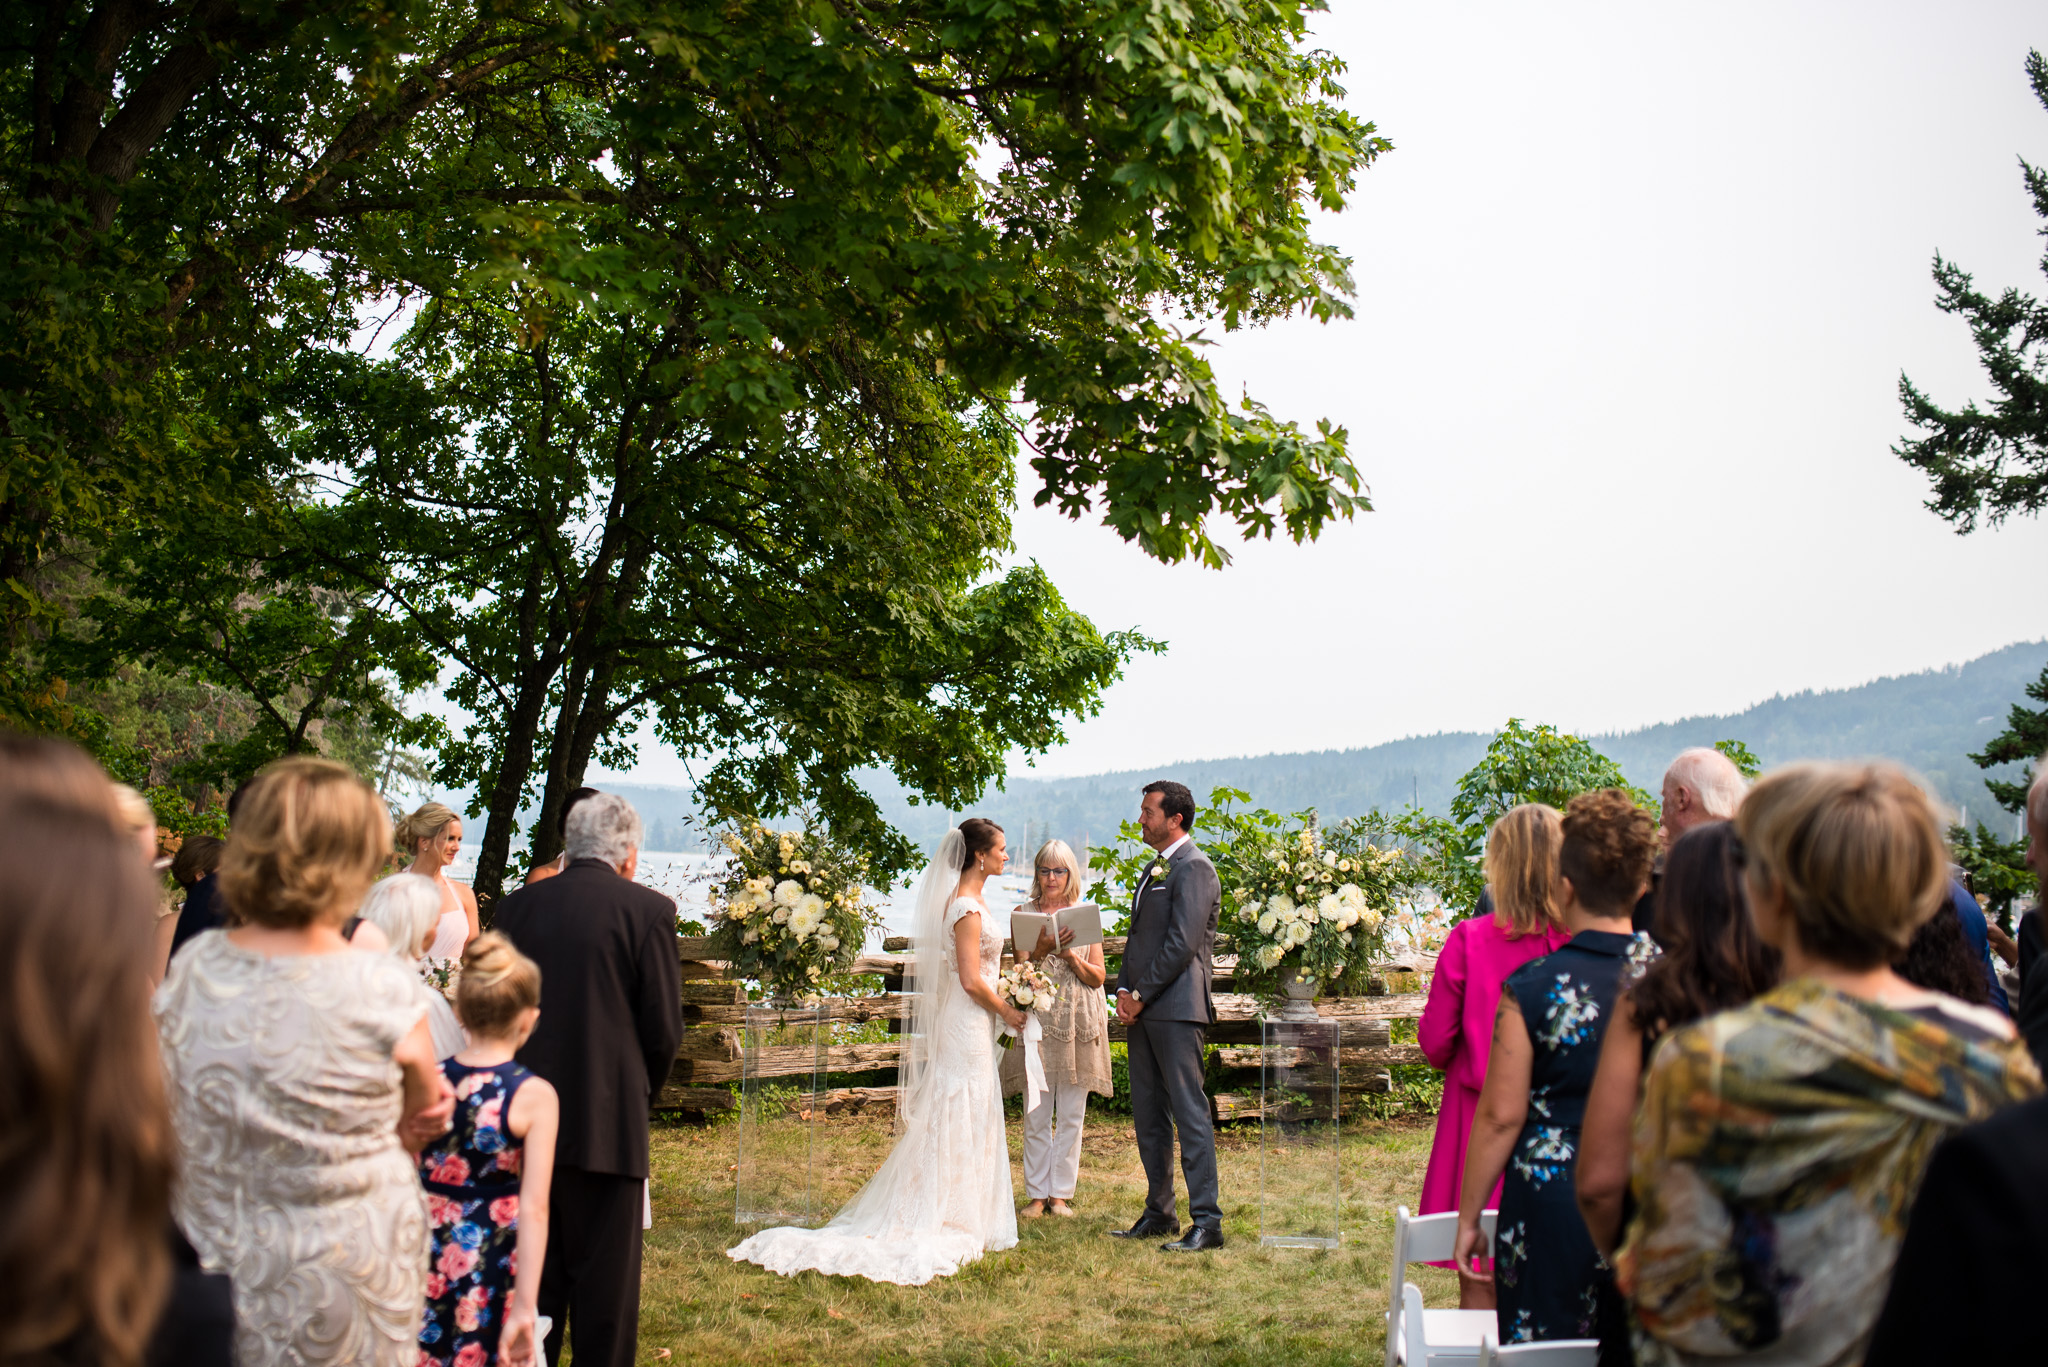 victoria-wedding-photographers-hastings-house-wedding-saltspring-island-wedding-37.jpg